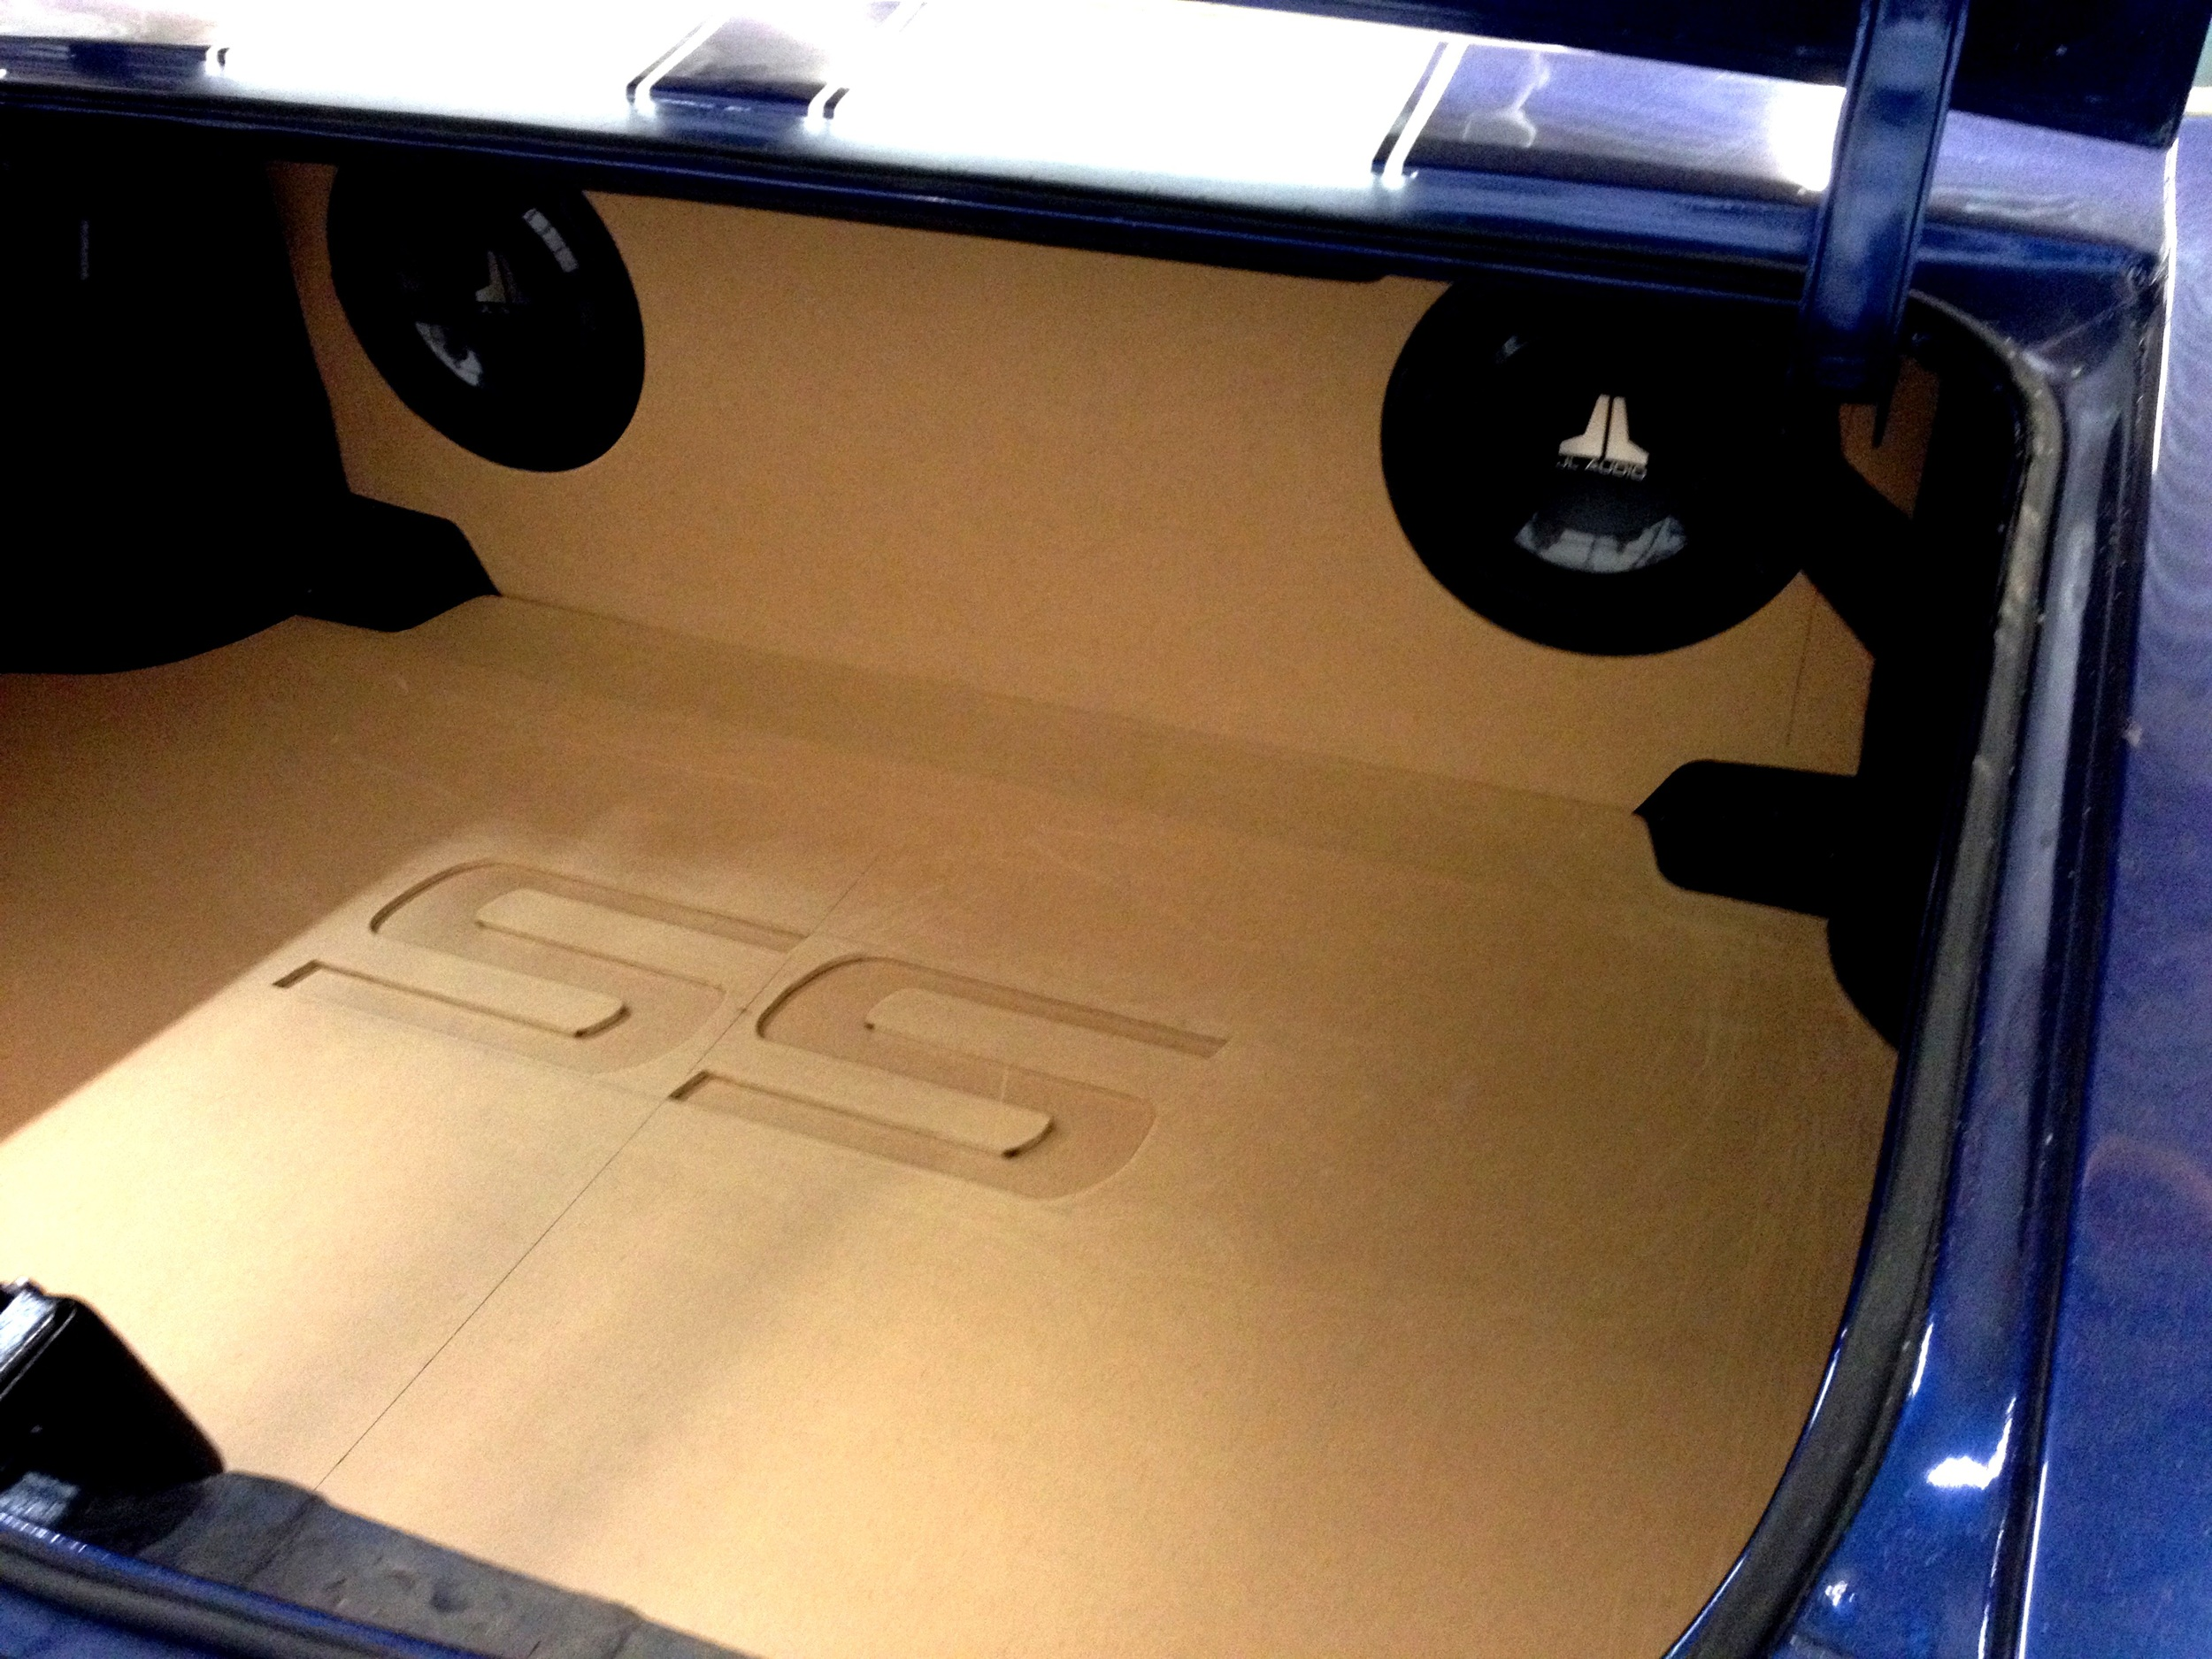 1972 Chevelle - DURING Custom Trunk Finish with Subwoofer Enclosure